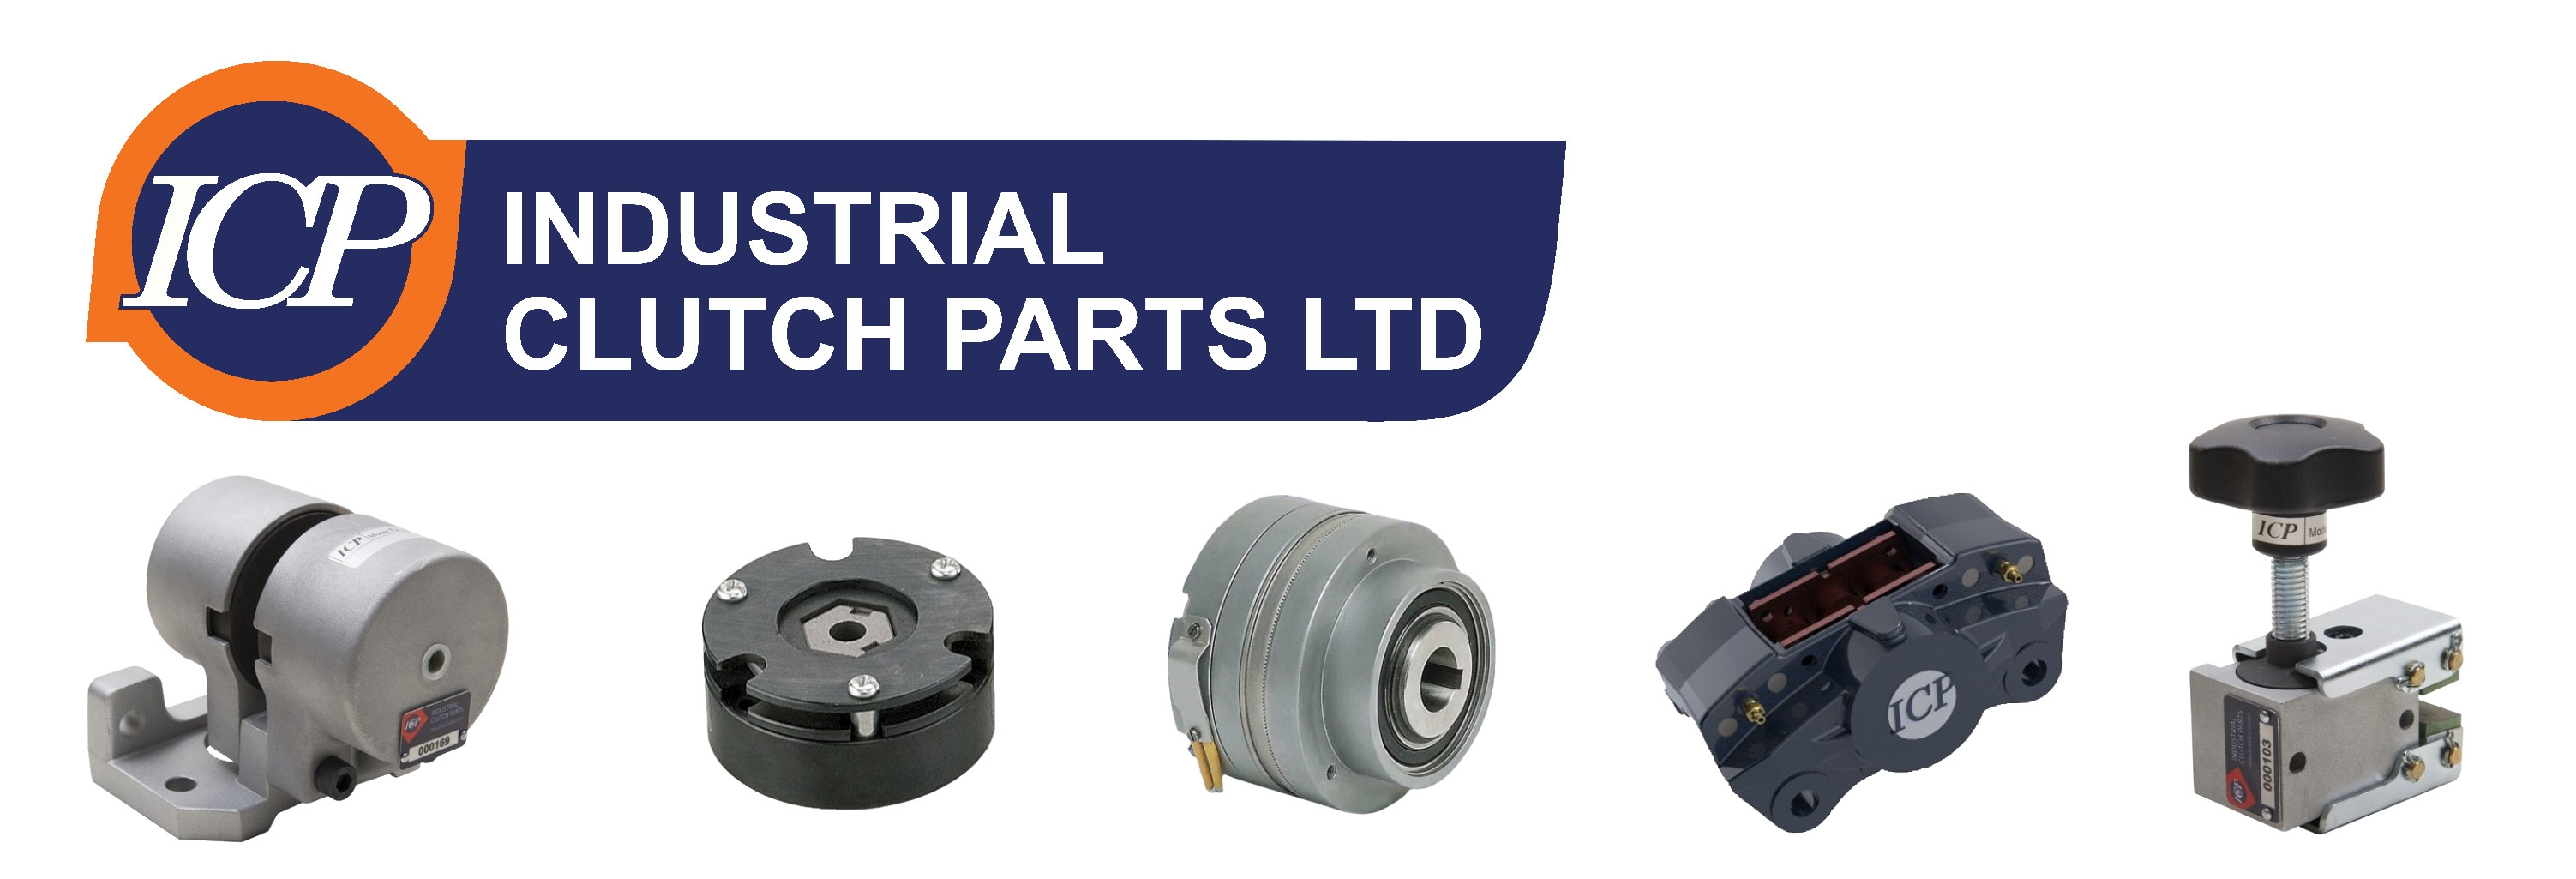 Industrial Clutch Parts